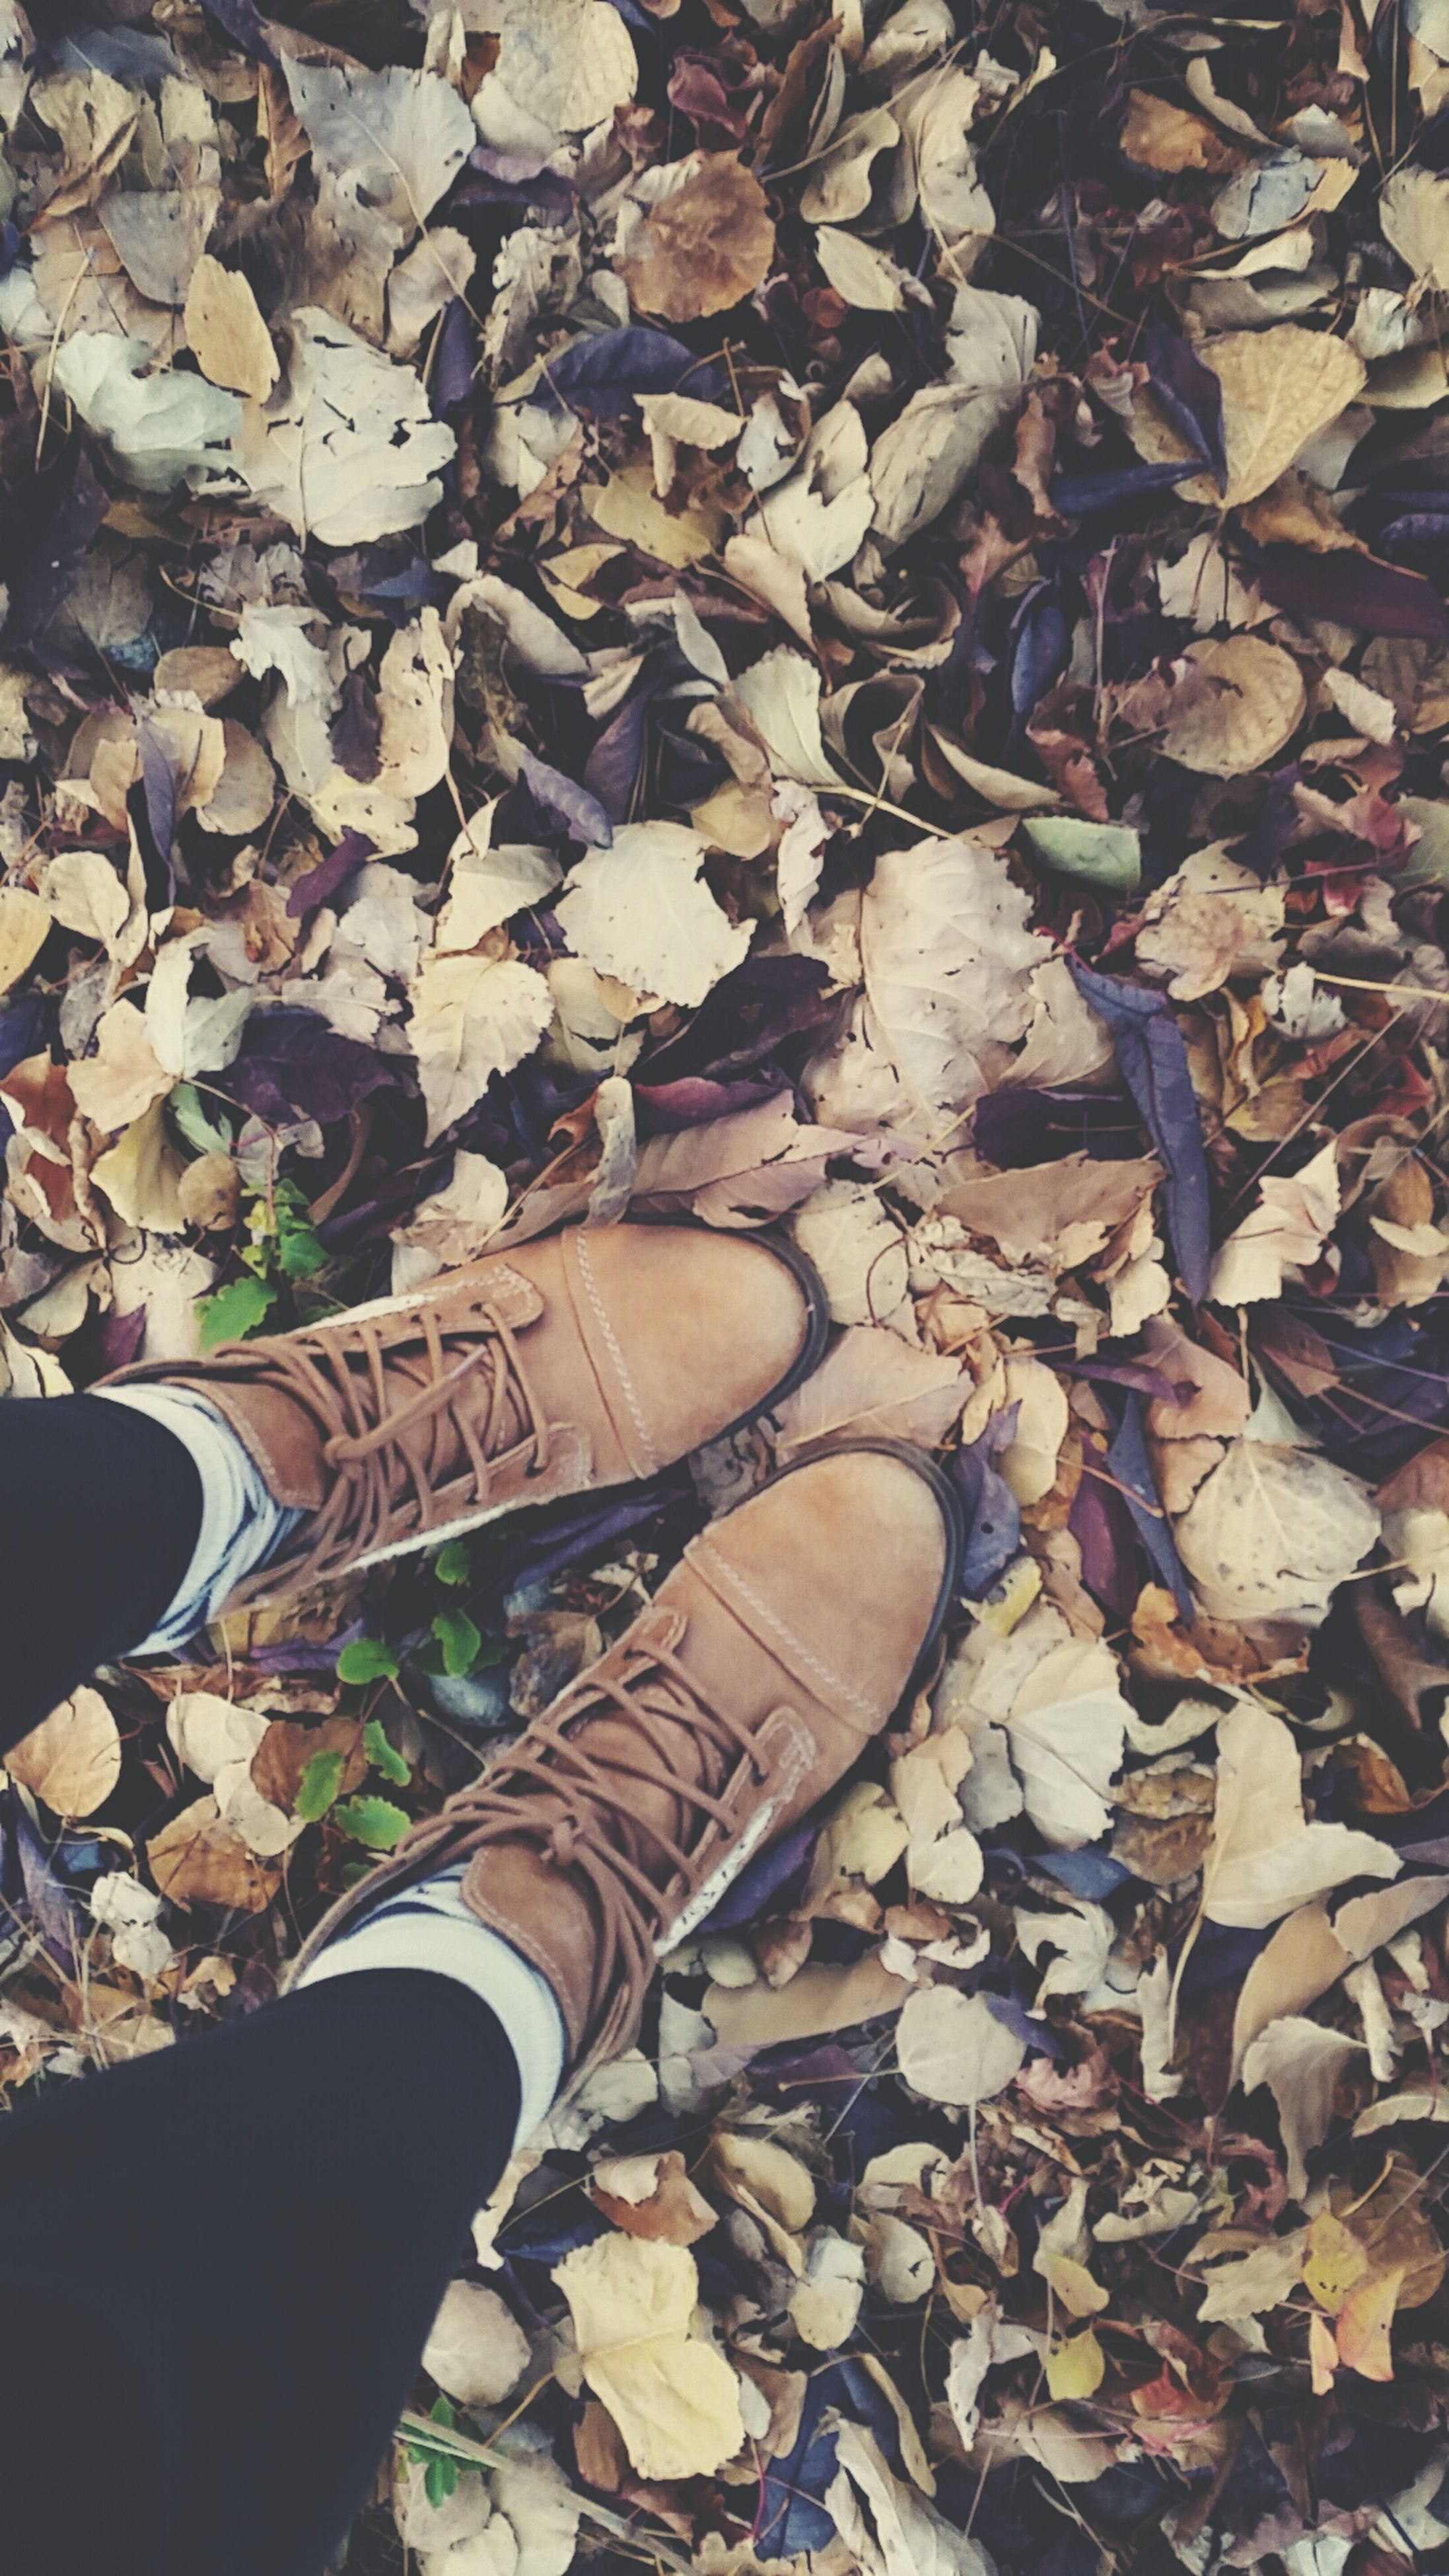 leaf, high angle view, shoe, abundance, autumn, dry, low section, field, fallen, outdoors, nature, day, leaves, large group of objects, personal perspective, stone - object, change, close-up, person, ground